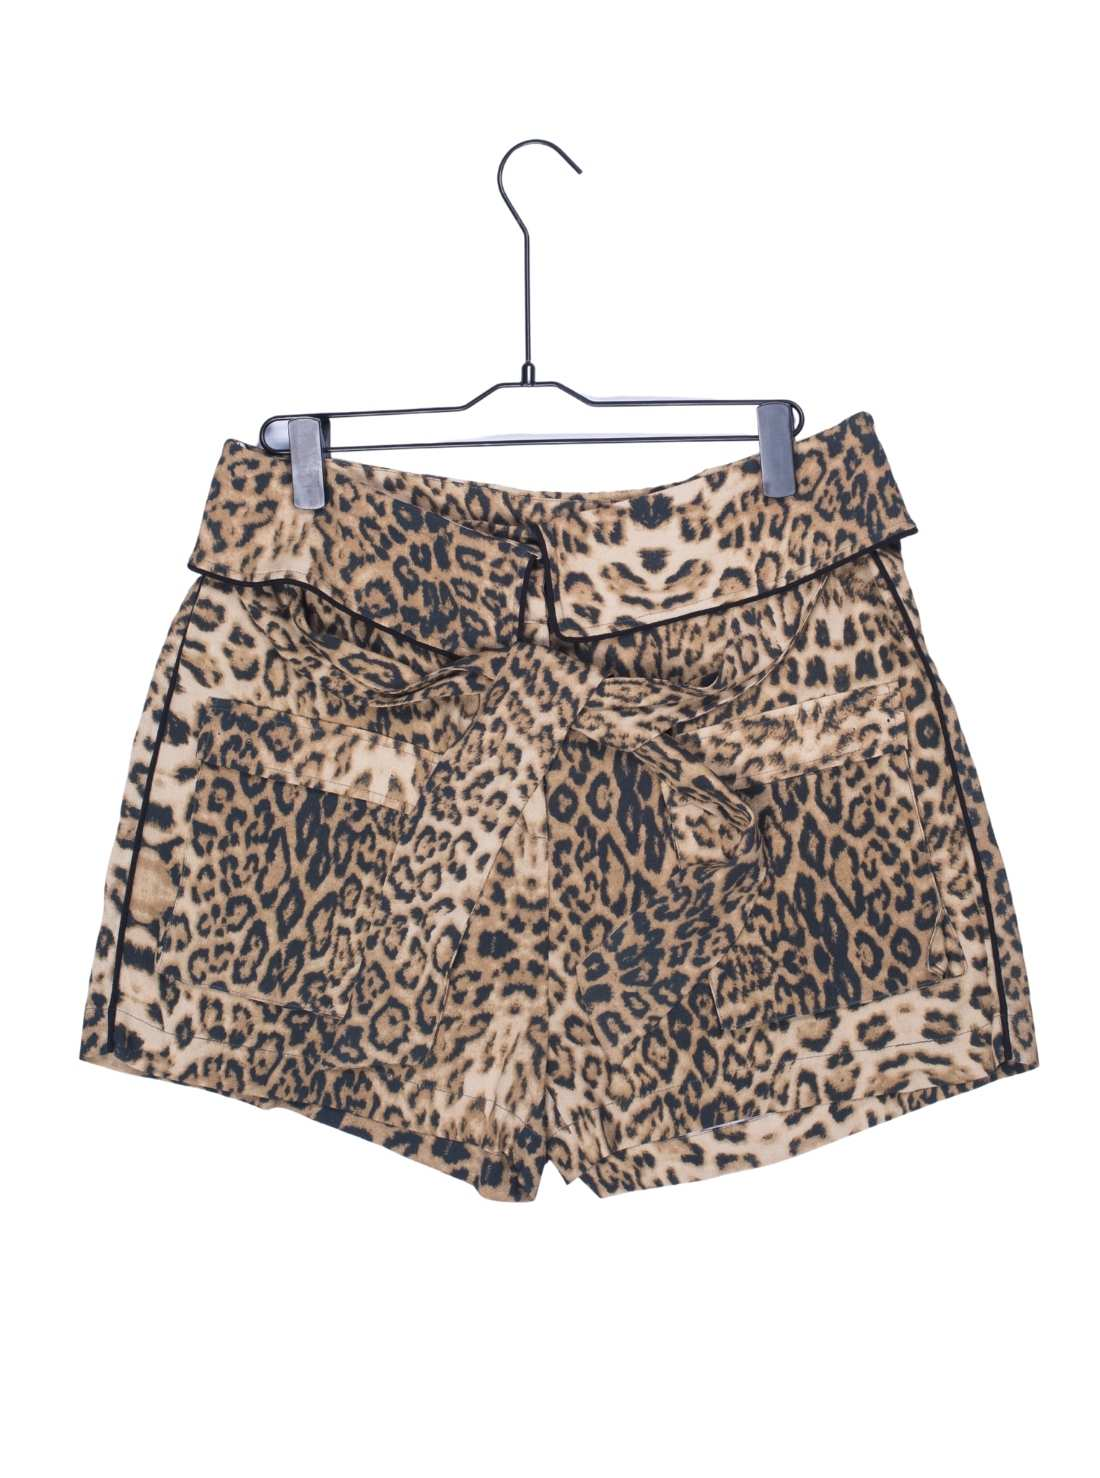 Ladies Viscose All Over Animale Print Short with 4 Pockets